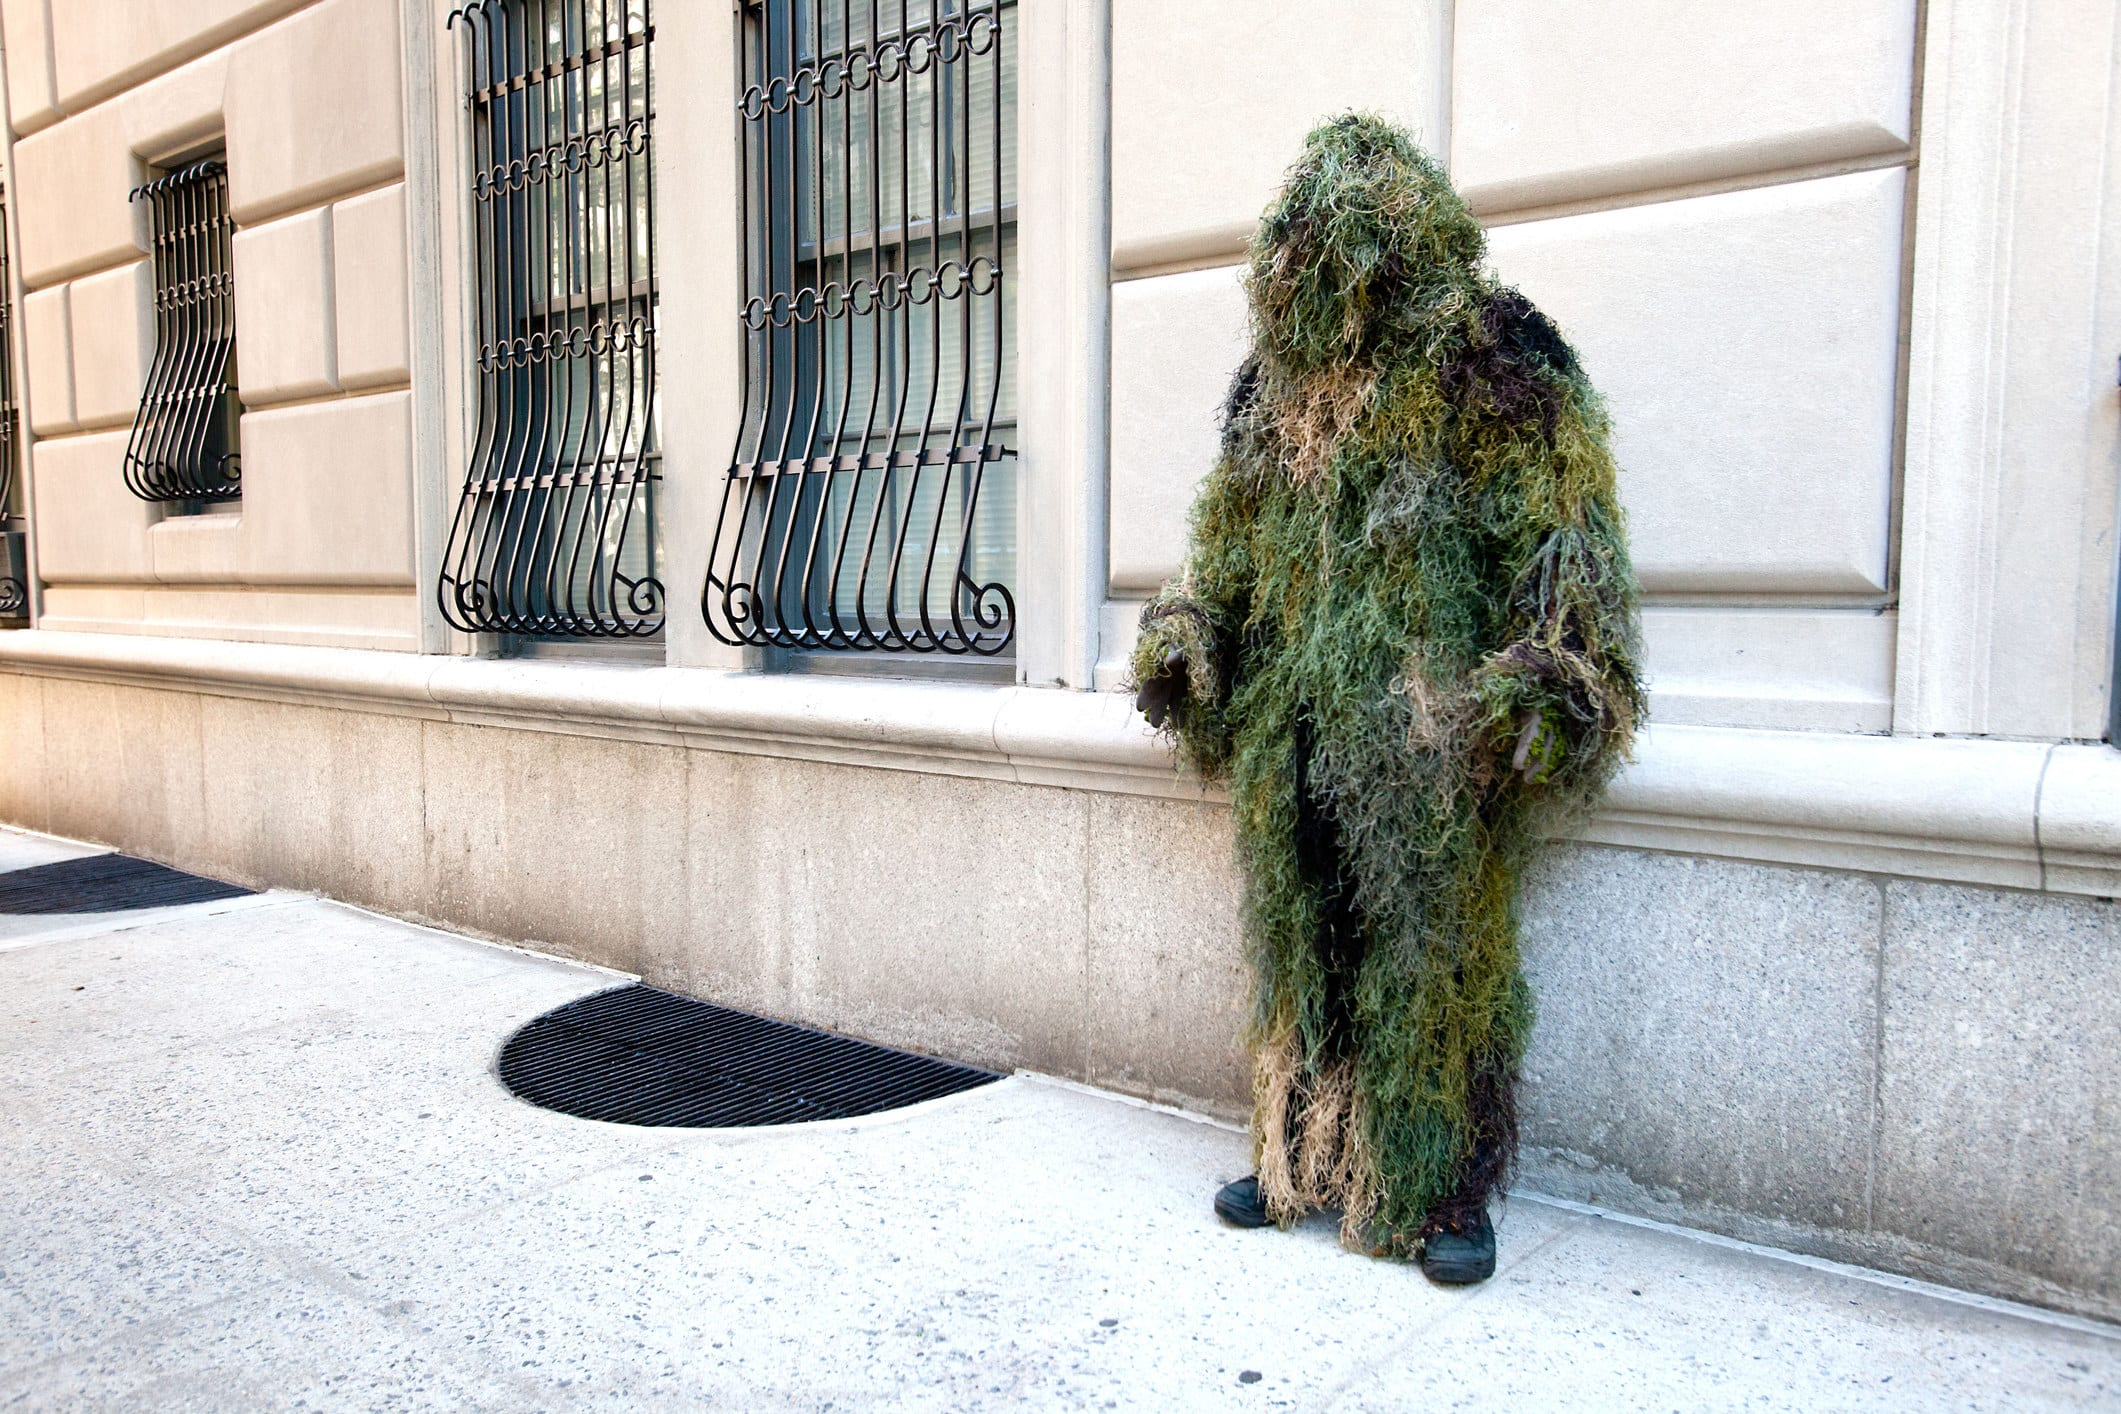 moss-covered man standing by a building